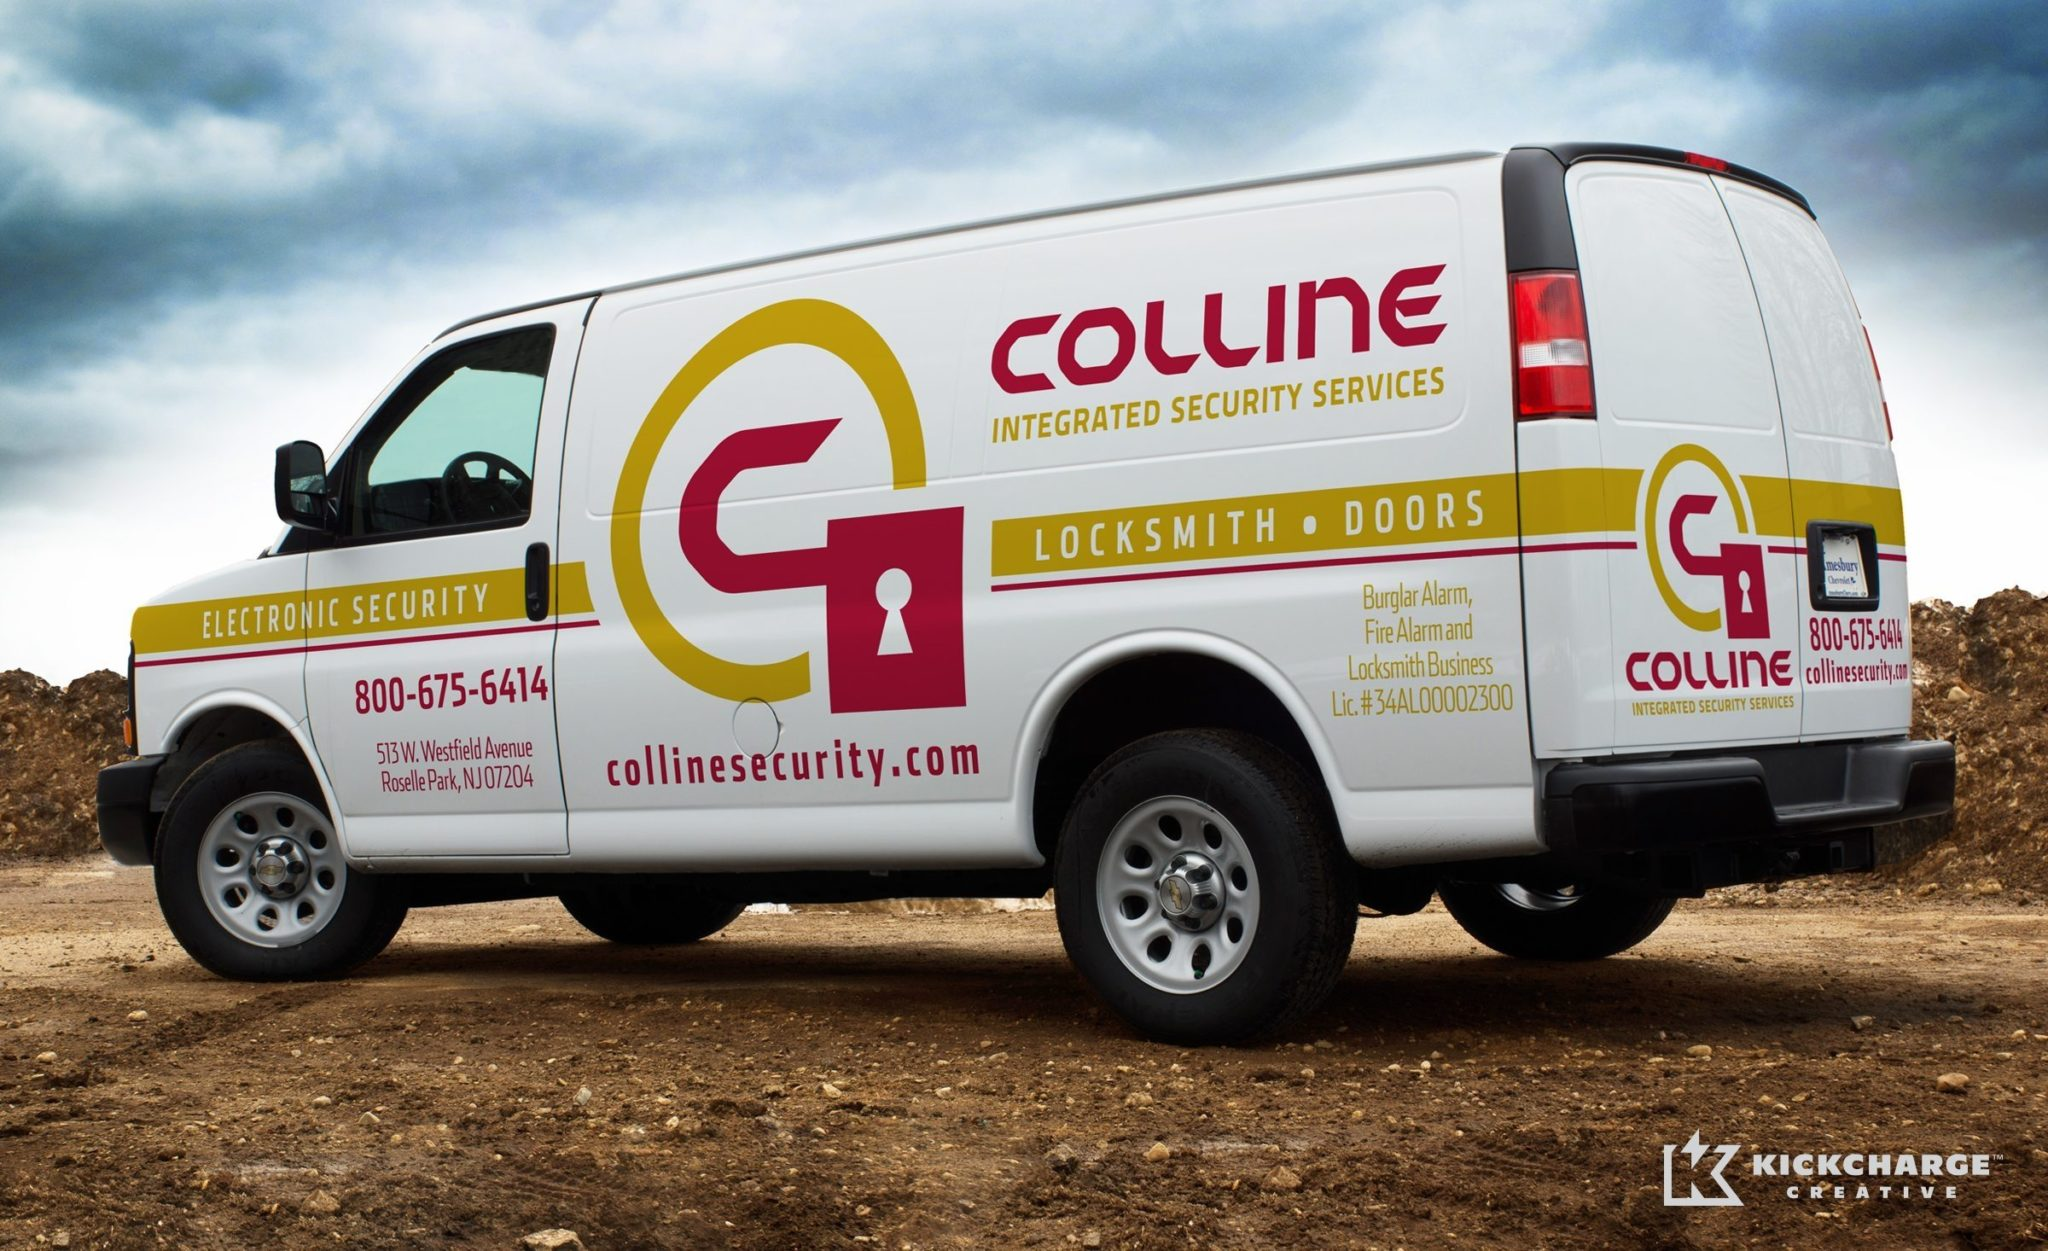 Truck wrap design for a security firm in NJ.